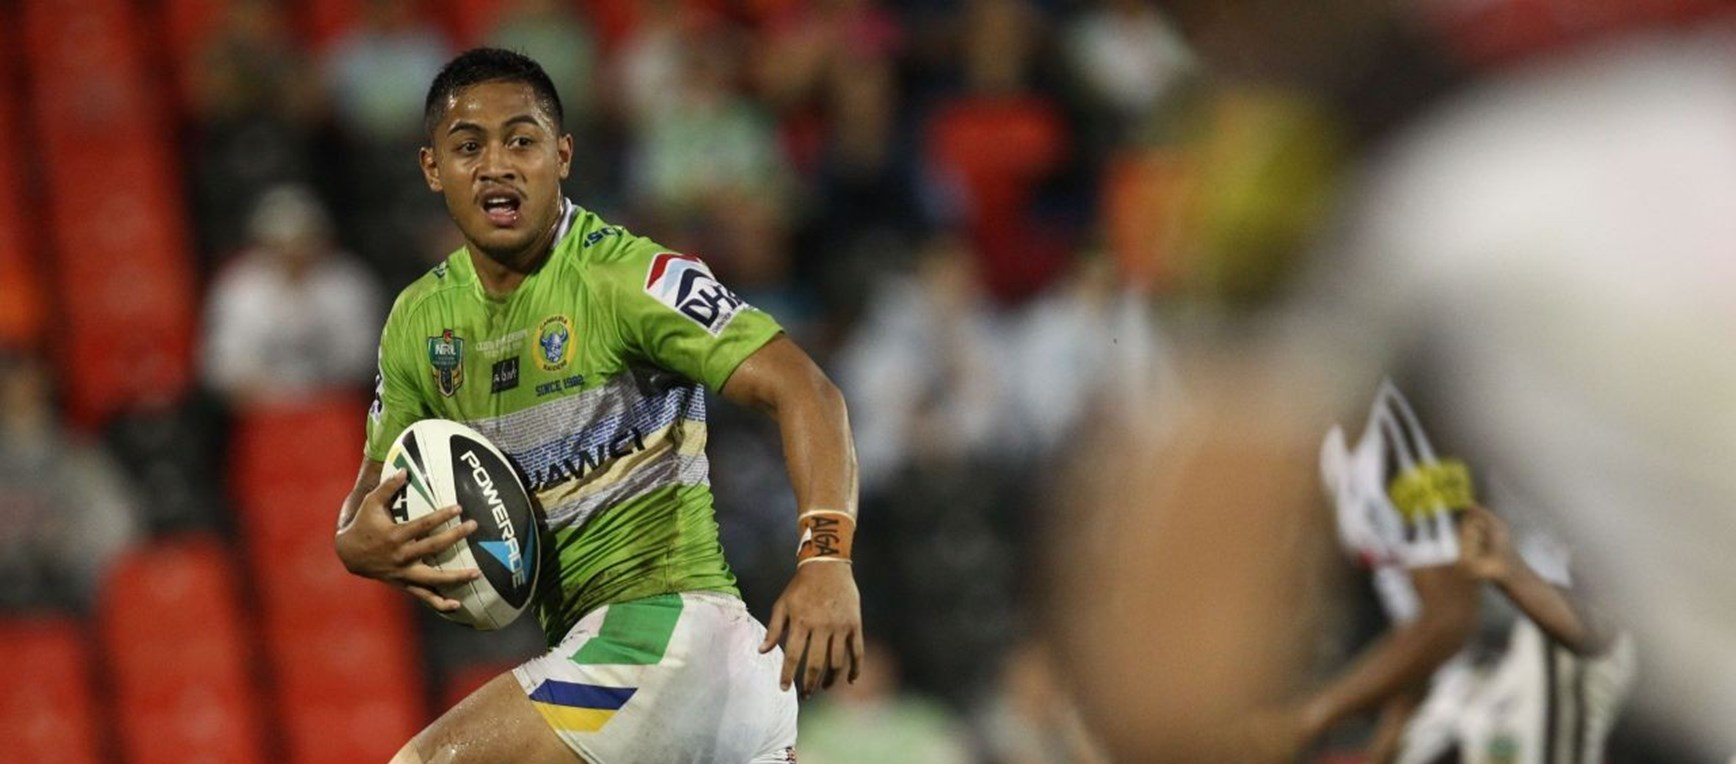 PHOTO GALLERY: Raiders v Panthers